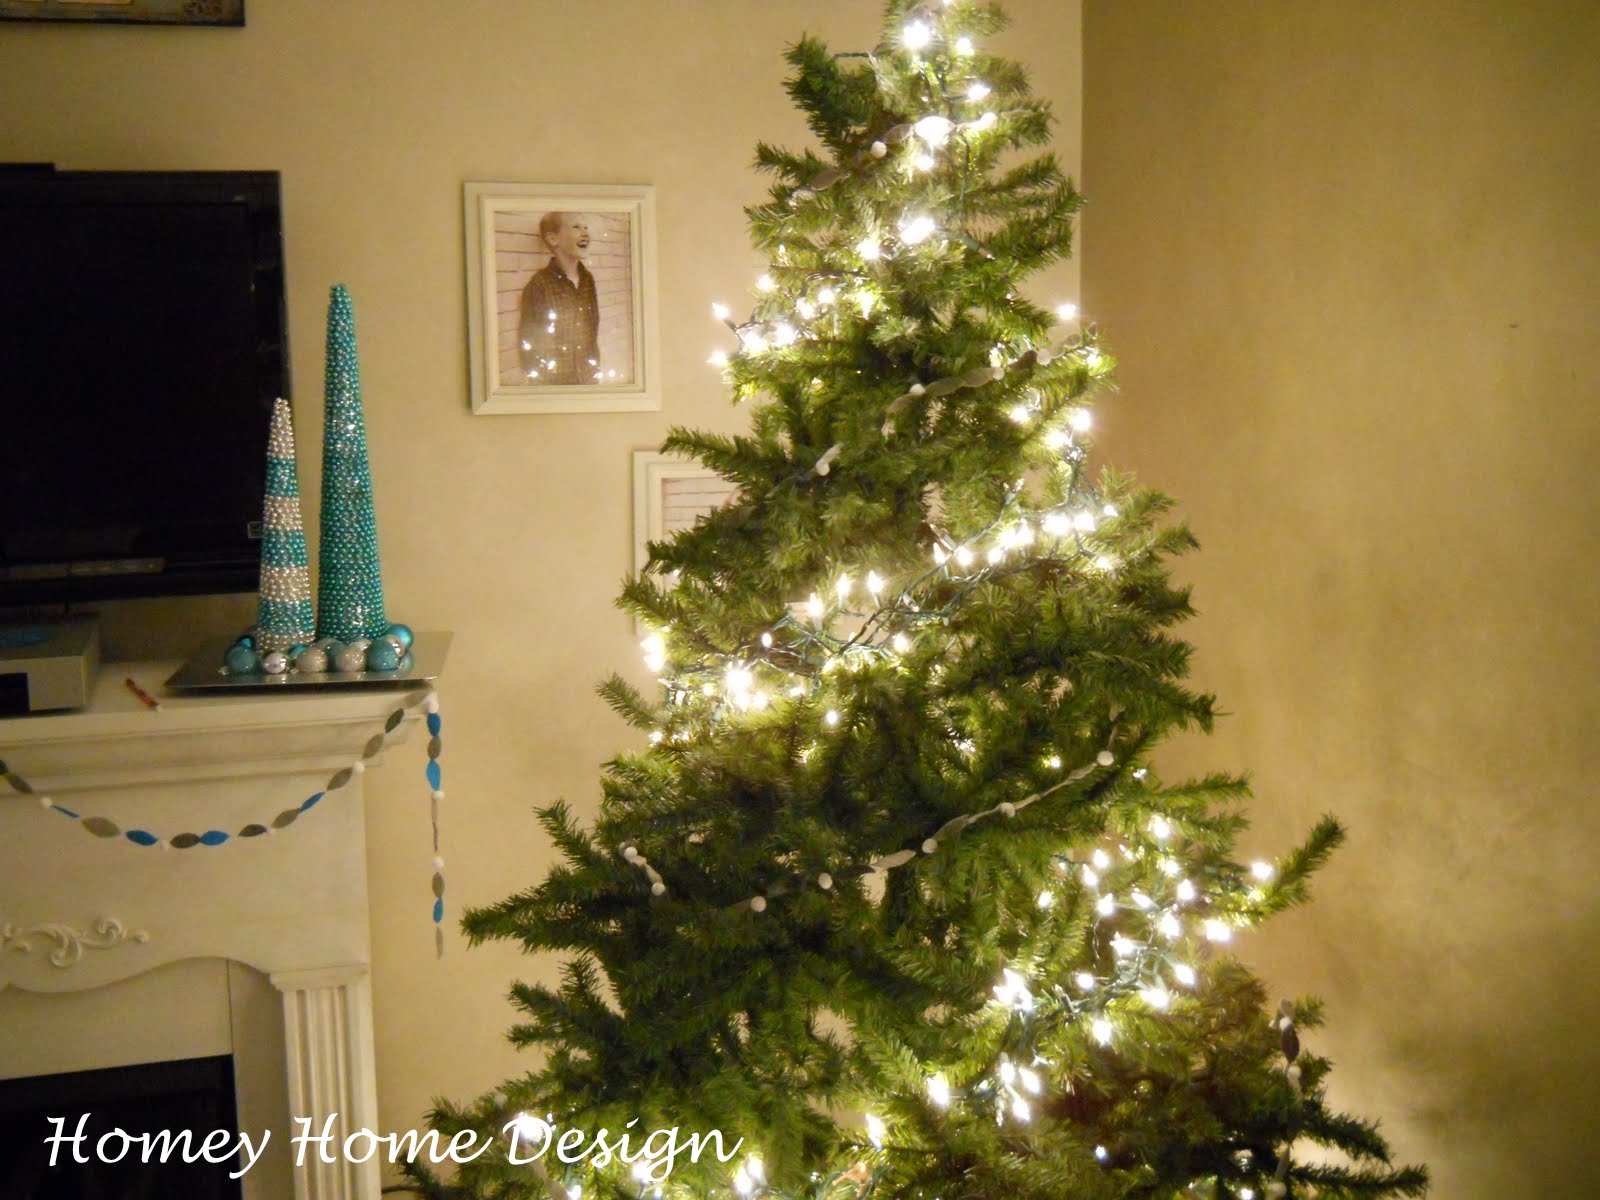 Other Images Like This! this is the related images of Christmas Trees  Without Ornaments